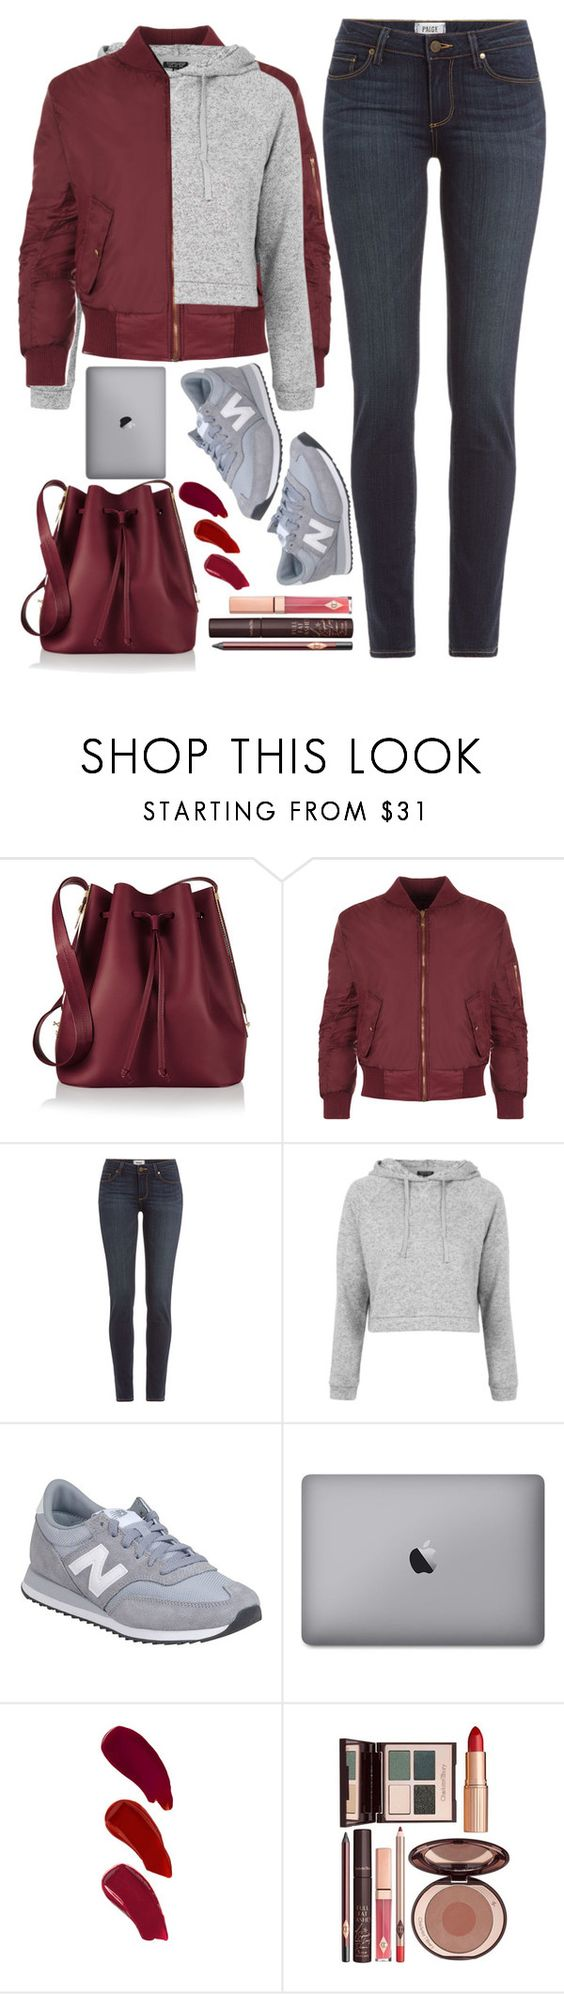 """""""back to school"""" by ecem1 ❤ liked on Polyvore featuring Sophie Hulme, WearAll, Paige Denim, Topshop, New Balance, Ellis Faas, Charlotte Tilbury, women's clothing, women and female"""